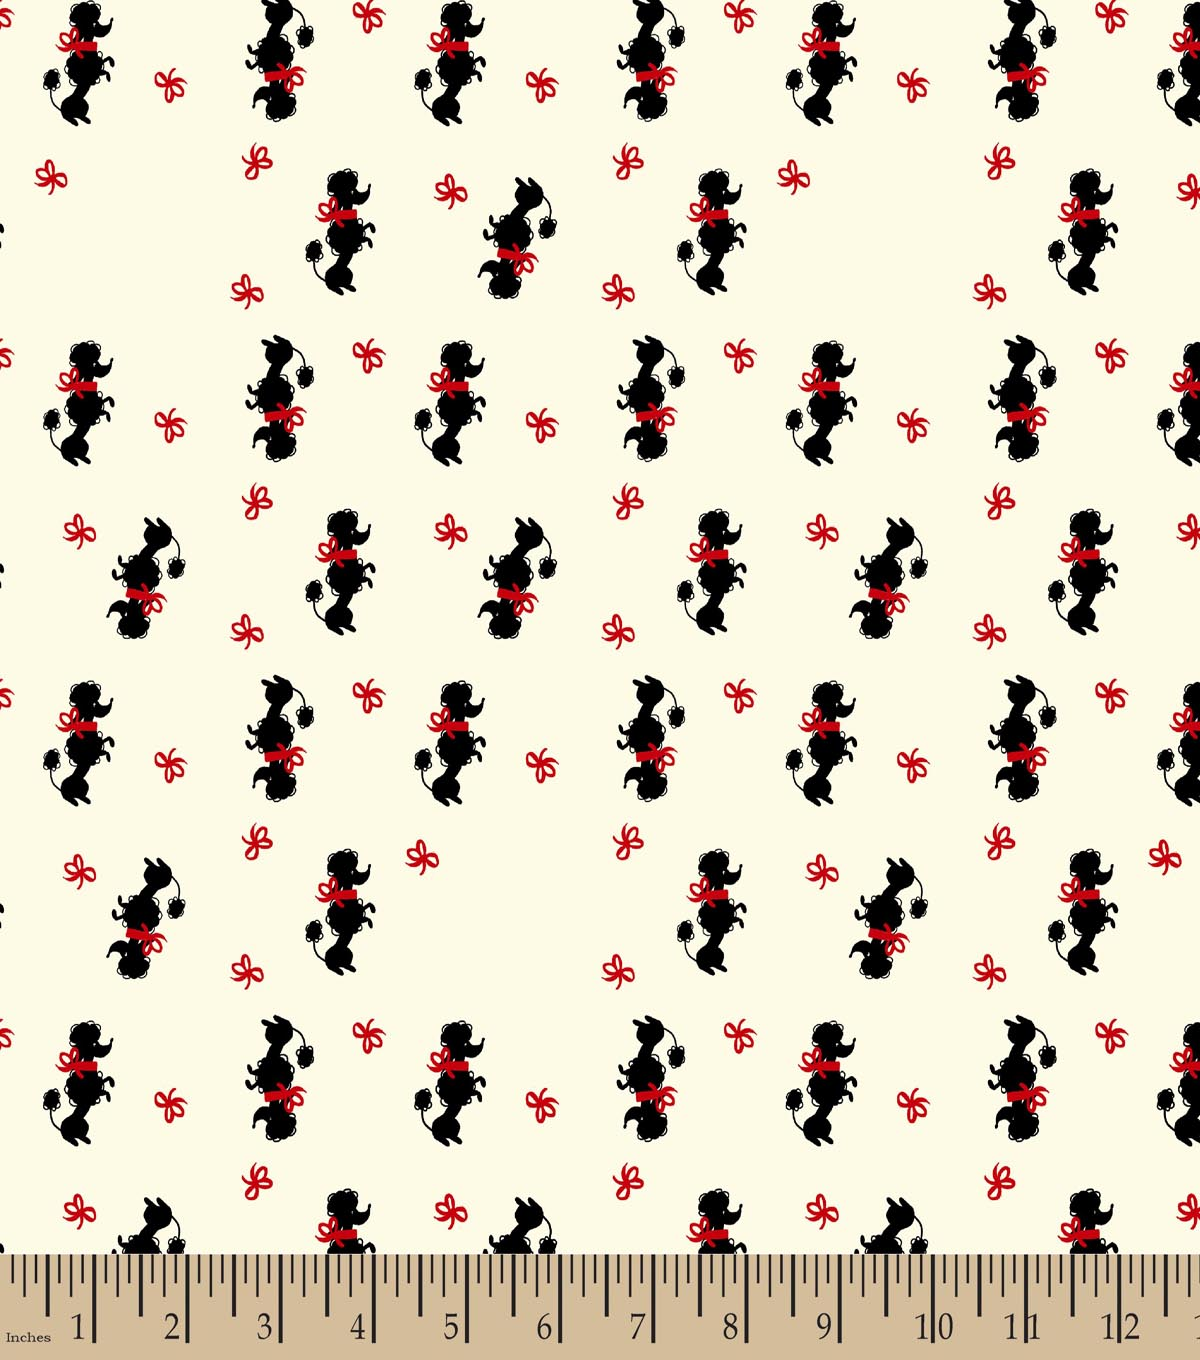 Poodle Print Fabric